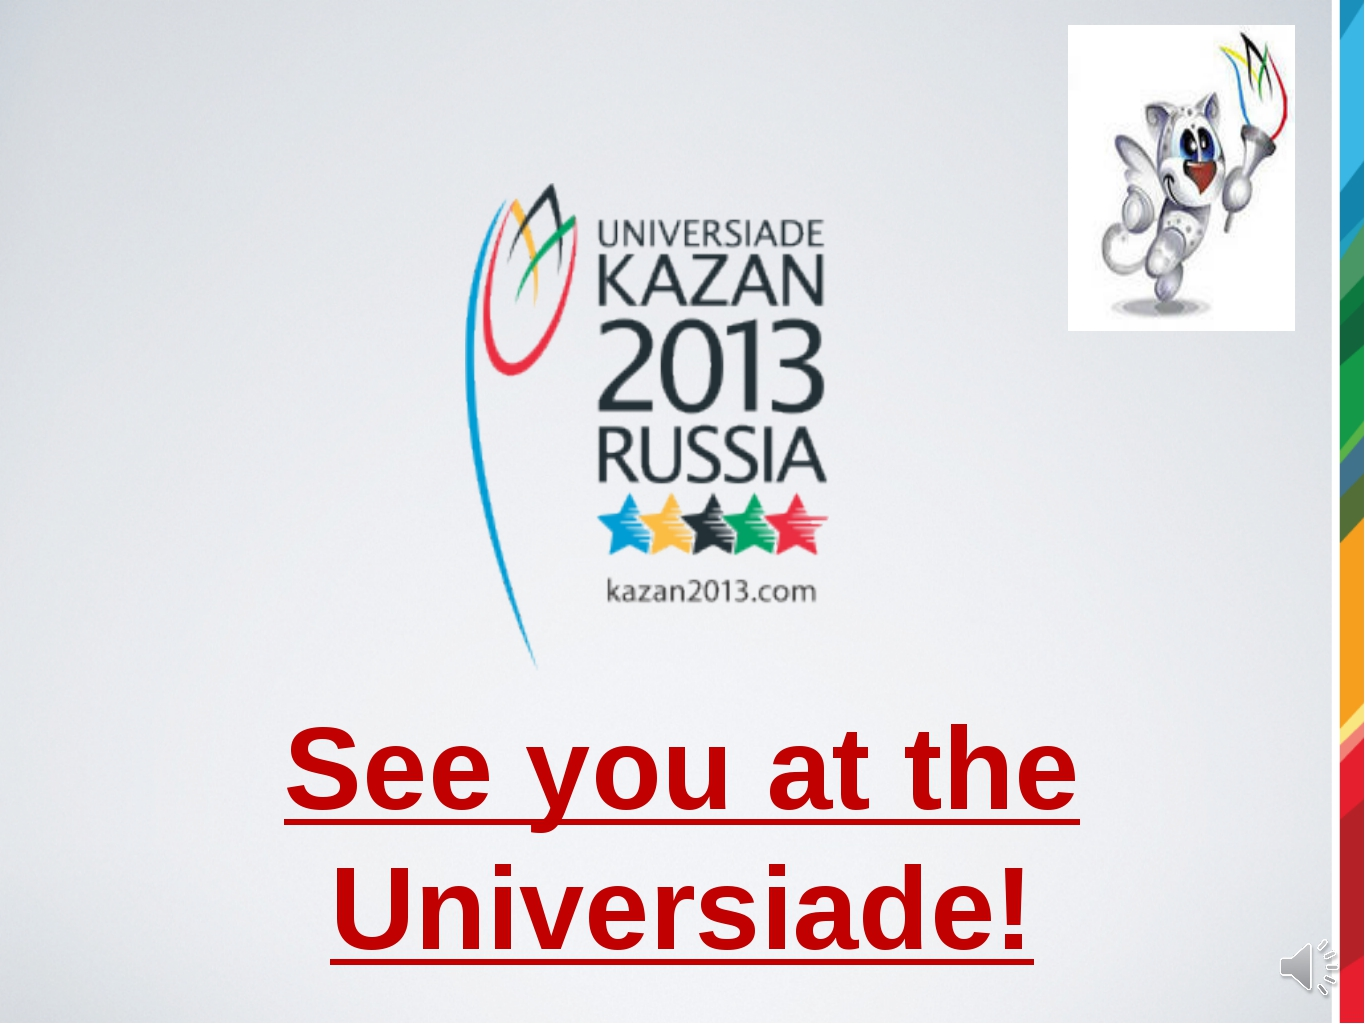 See you at the Universiade!